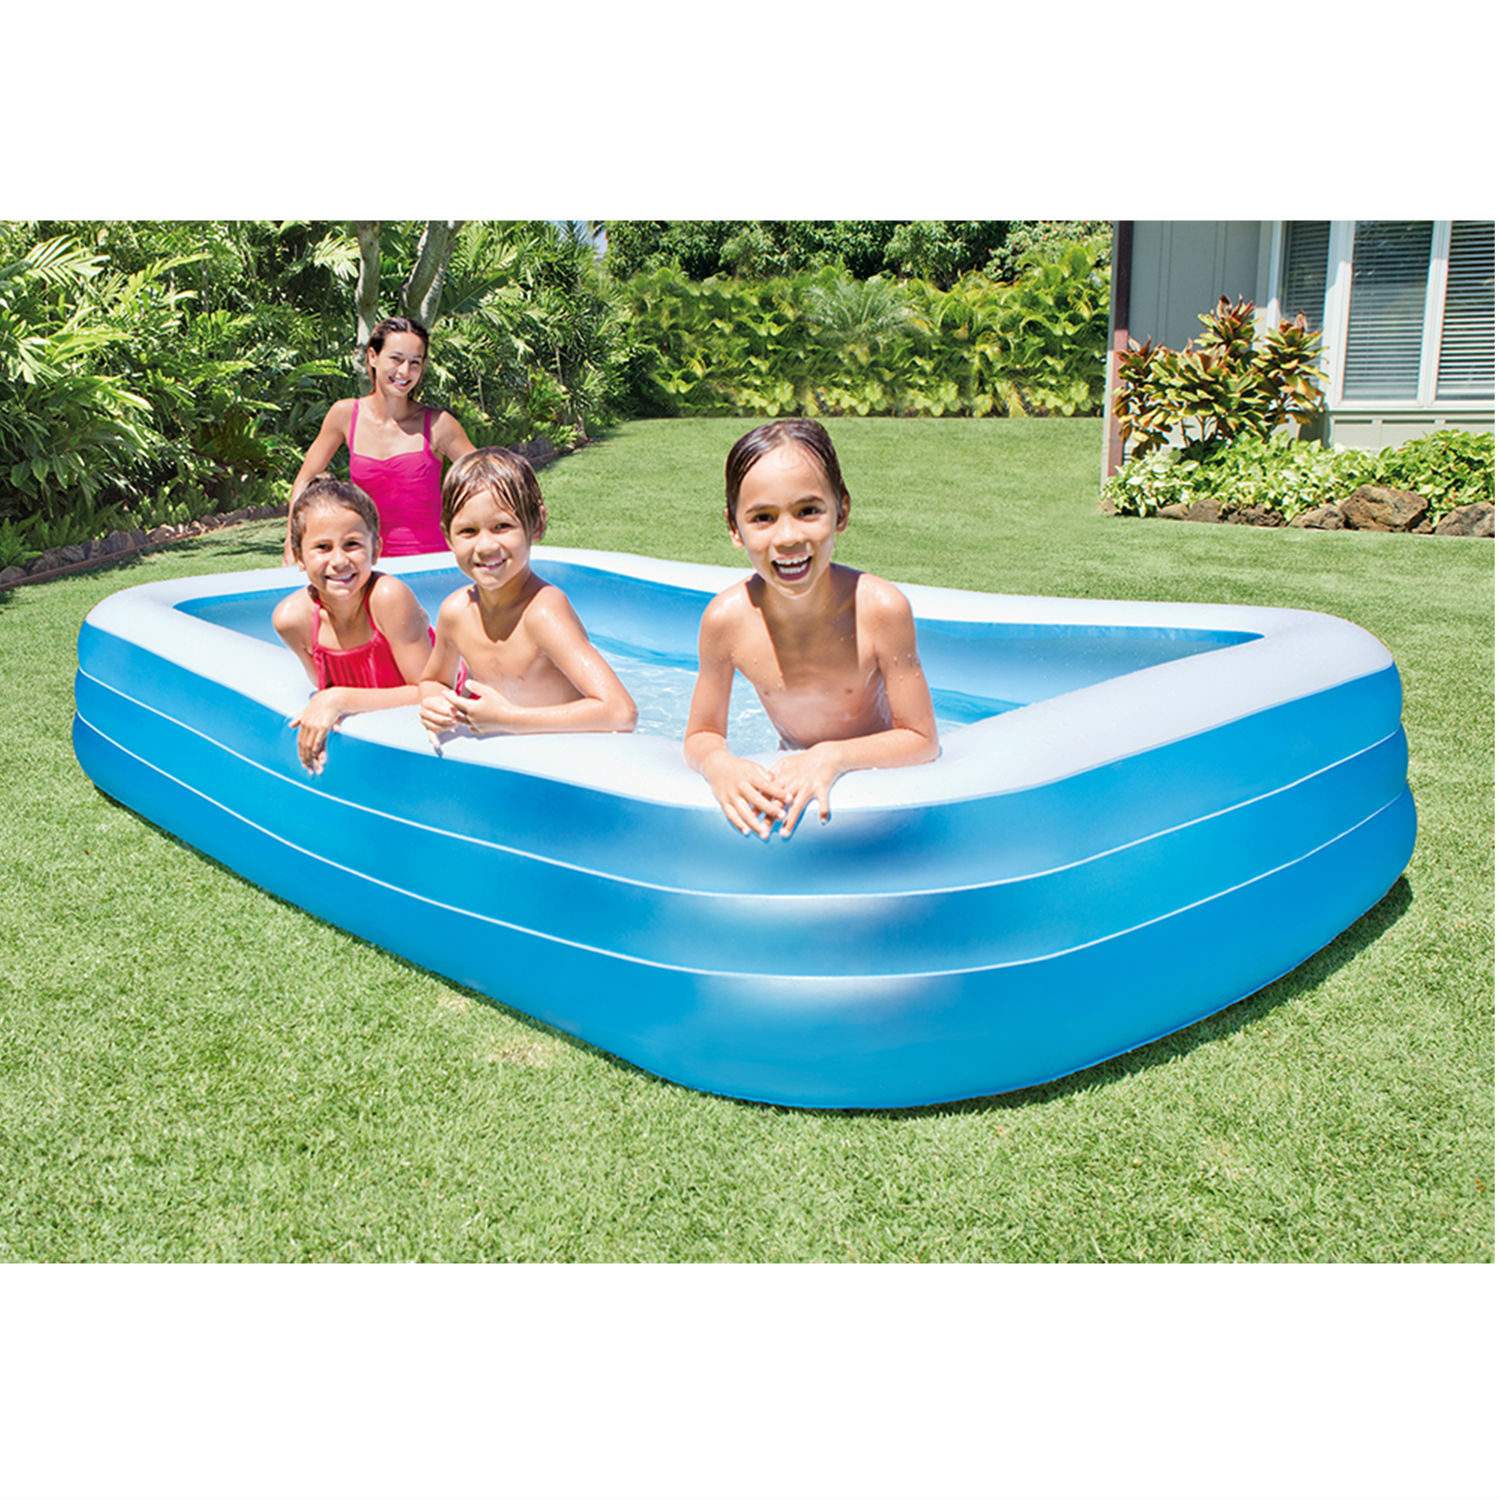 Intex Inflatable Swim Center Family Lounge Pool 120 X 72 X 22